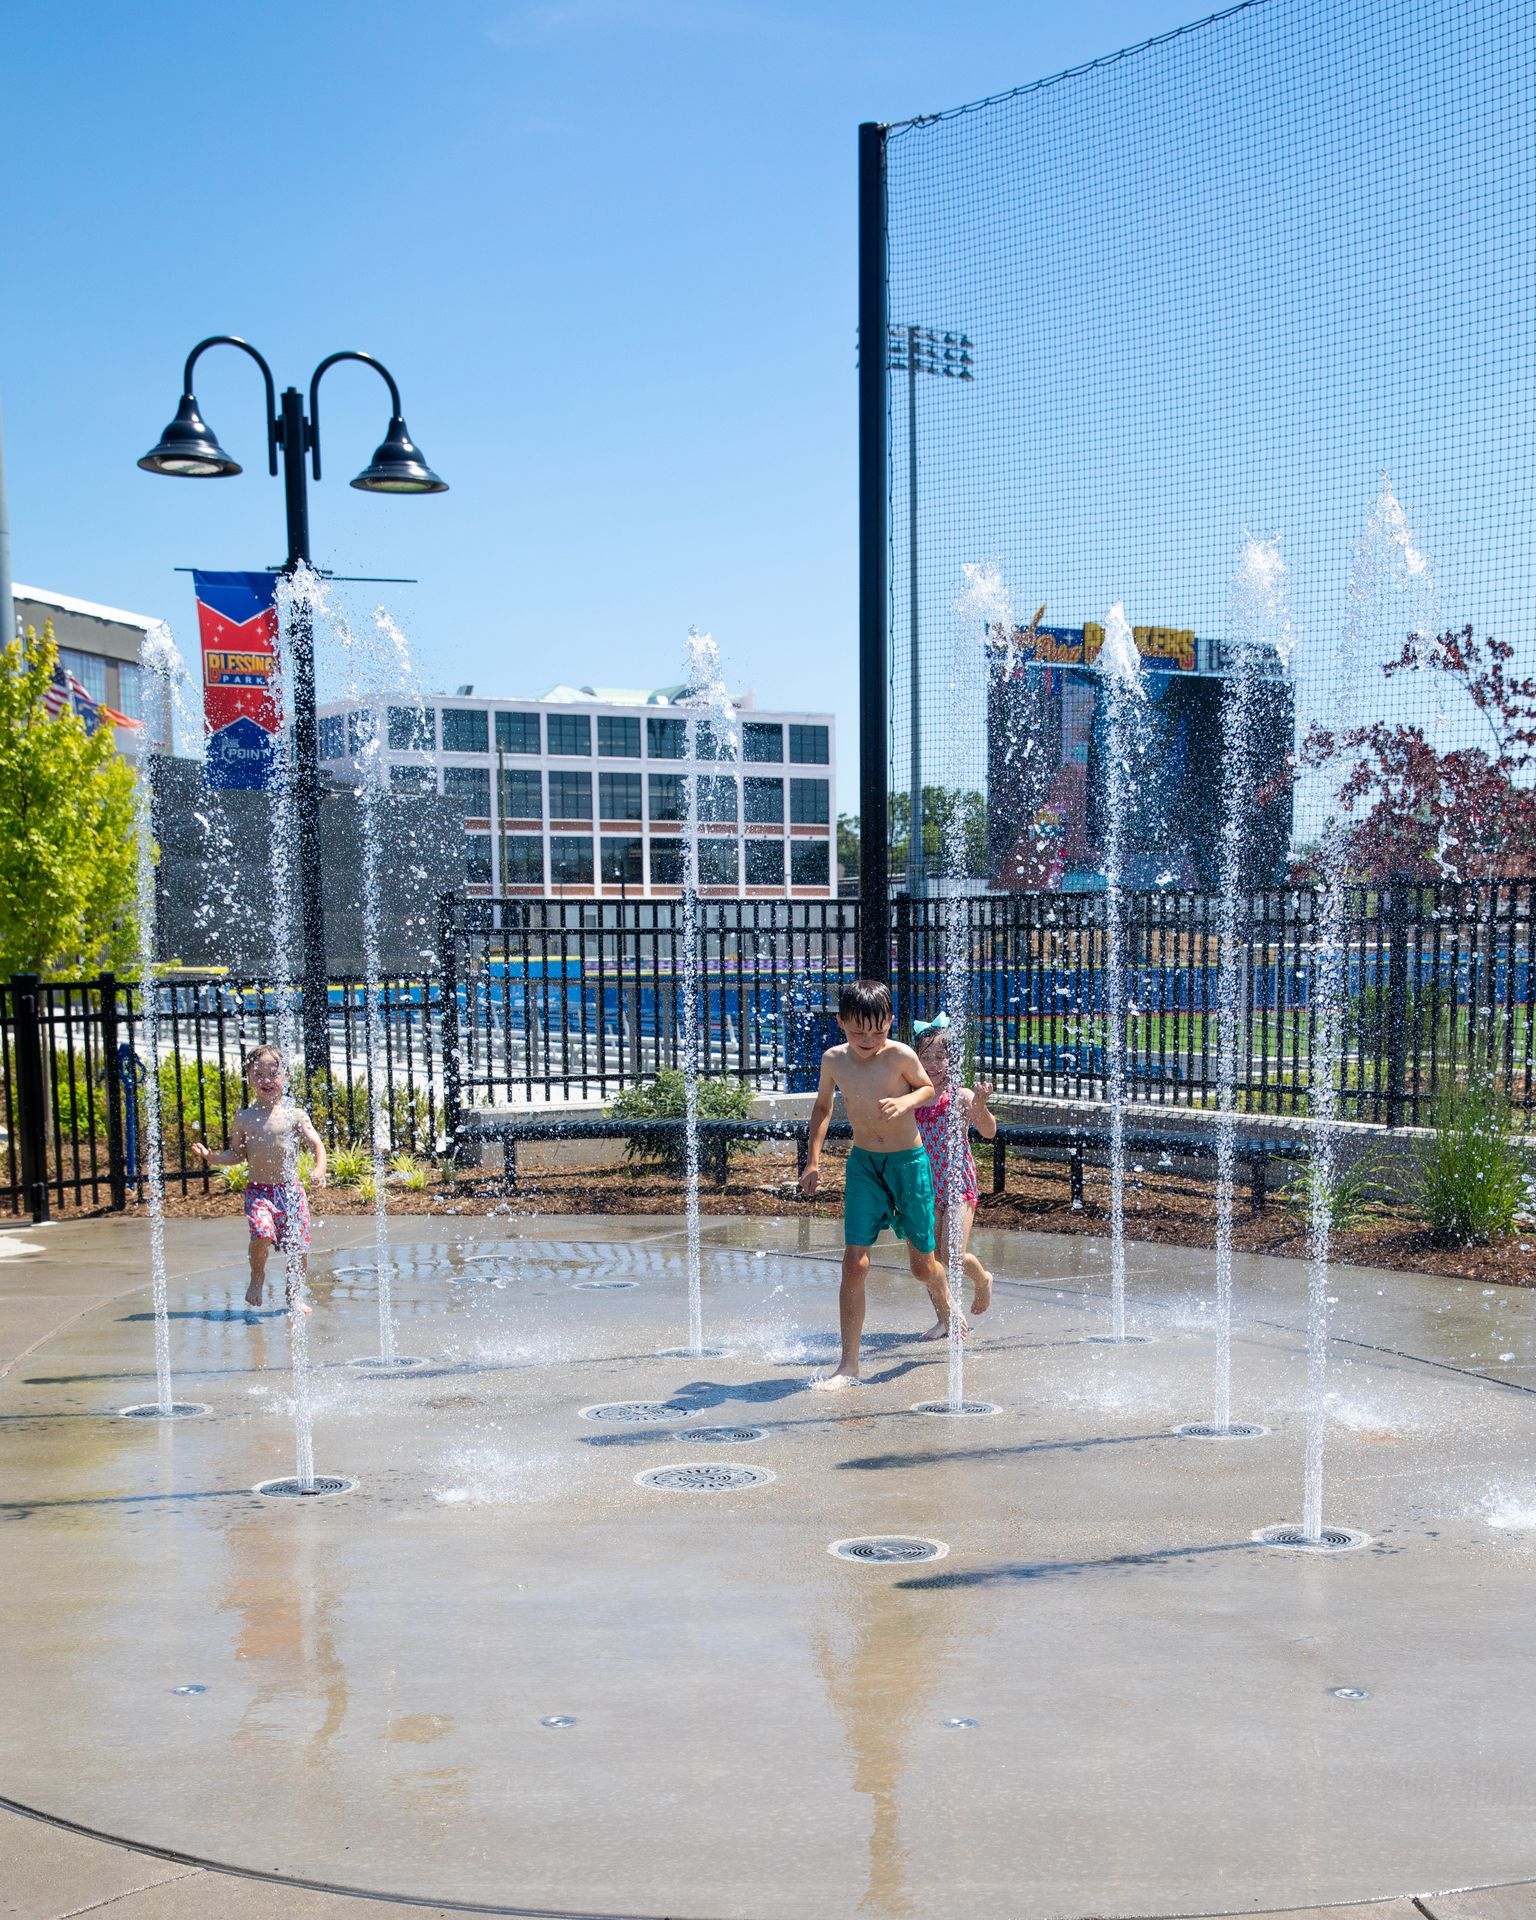 At Blessing Park in High Point, NC, kids play in the splash pad at the High Point Rockers stadium.